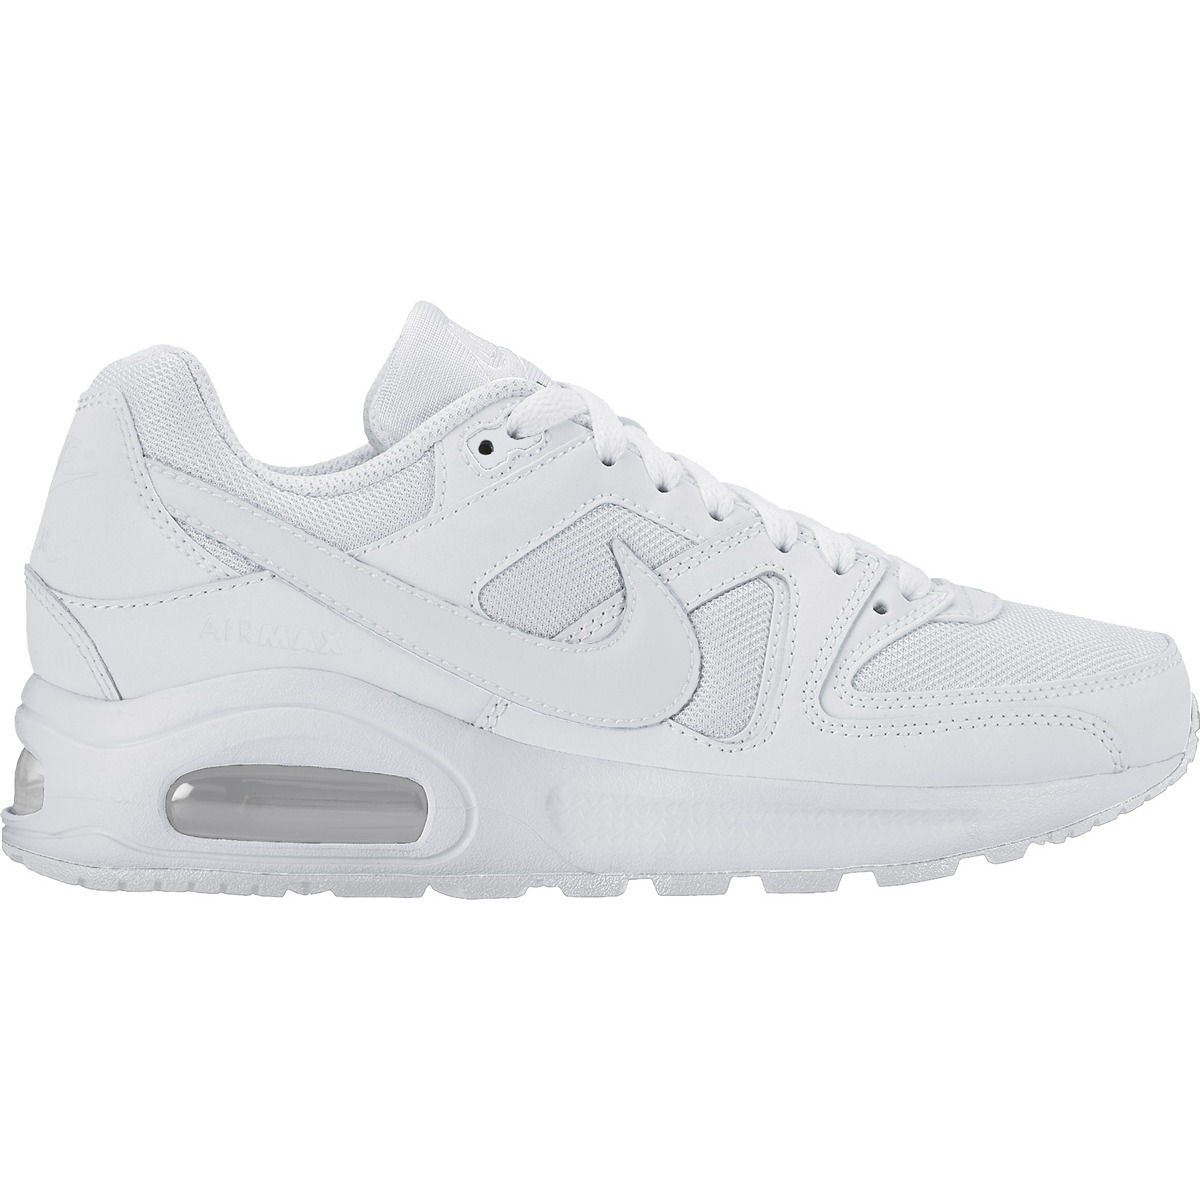 premium selection 57e3c c41ab purchase nike air max command flex junior 4daa3 bec6e